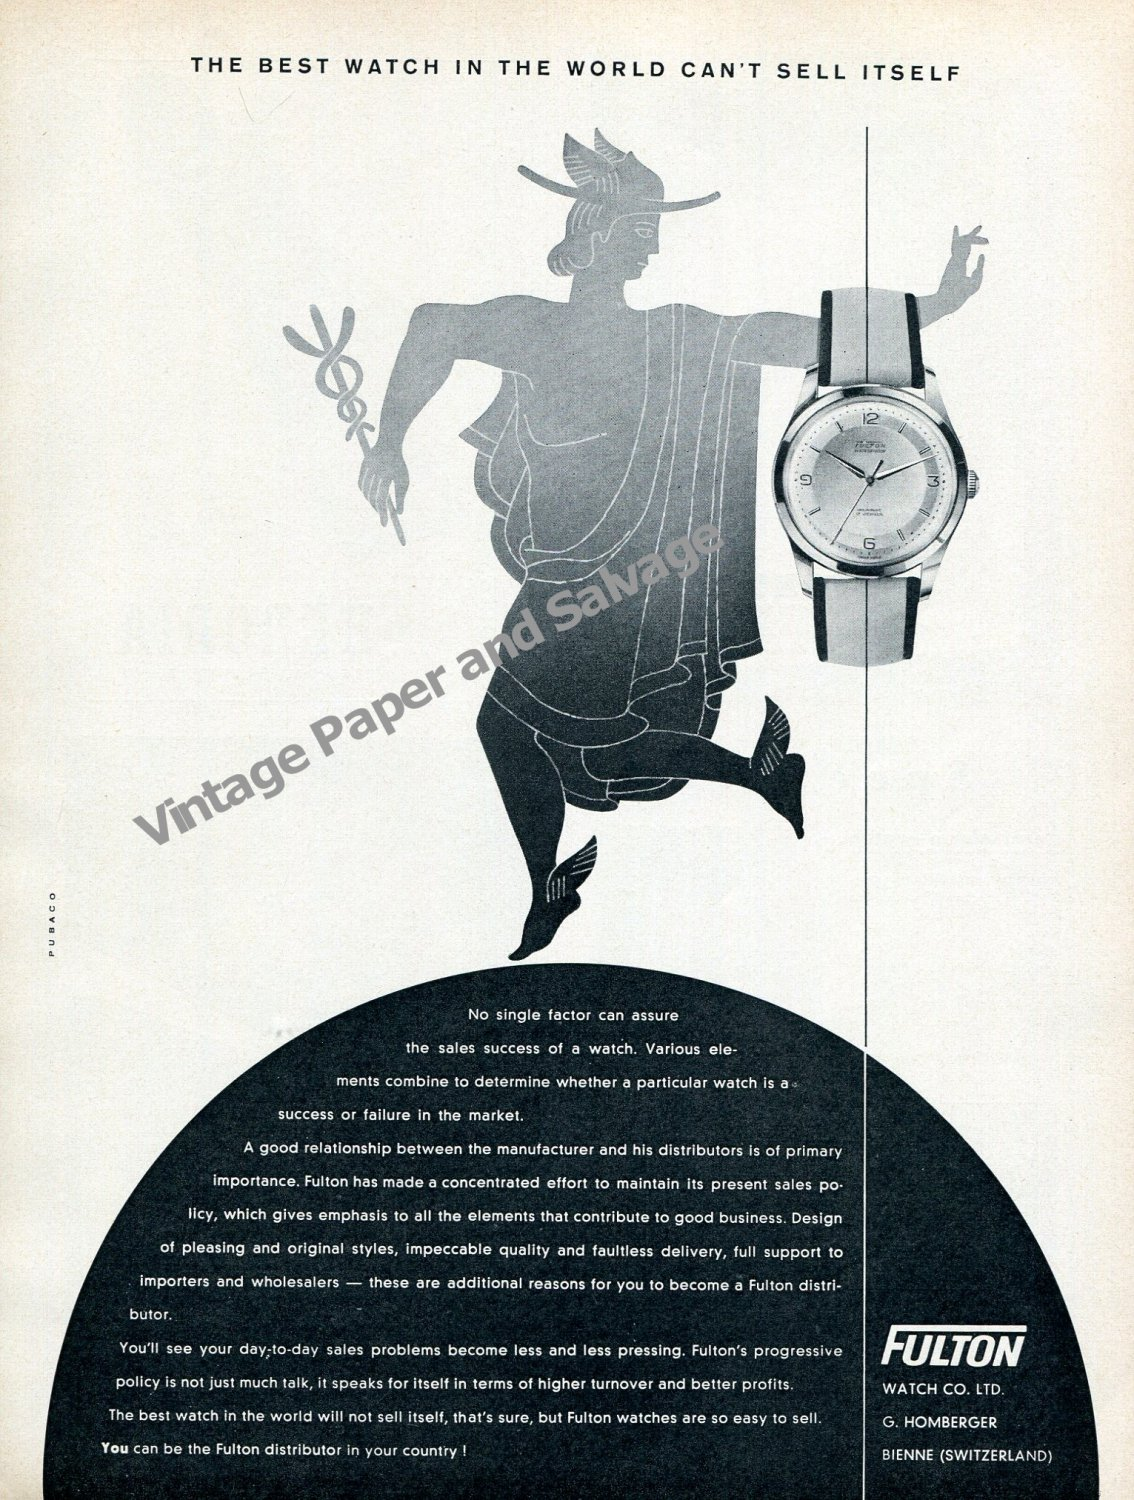 Fulton Watch Co The Best Watch in the World Can't Sell Itself 1957 Swiss Advert